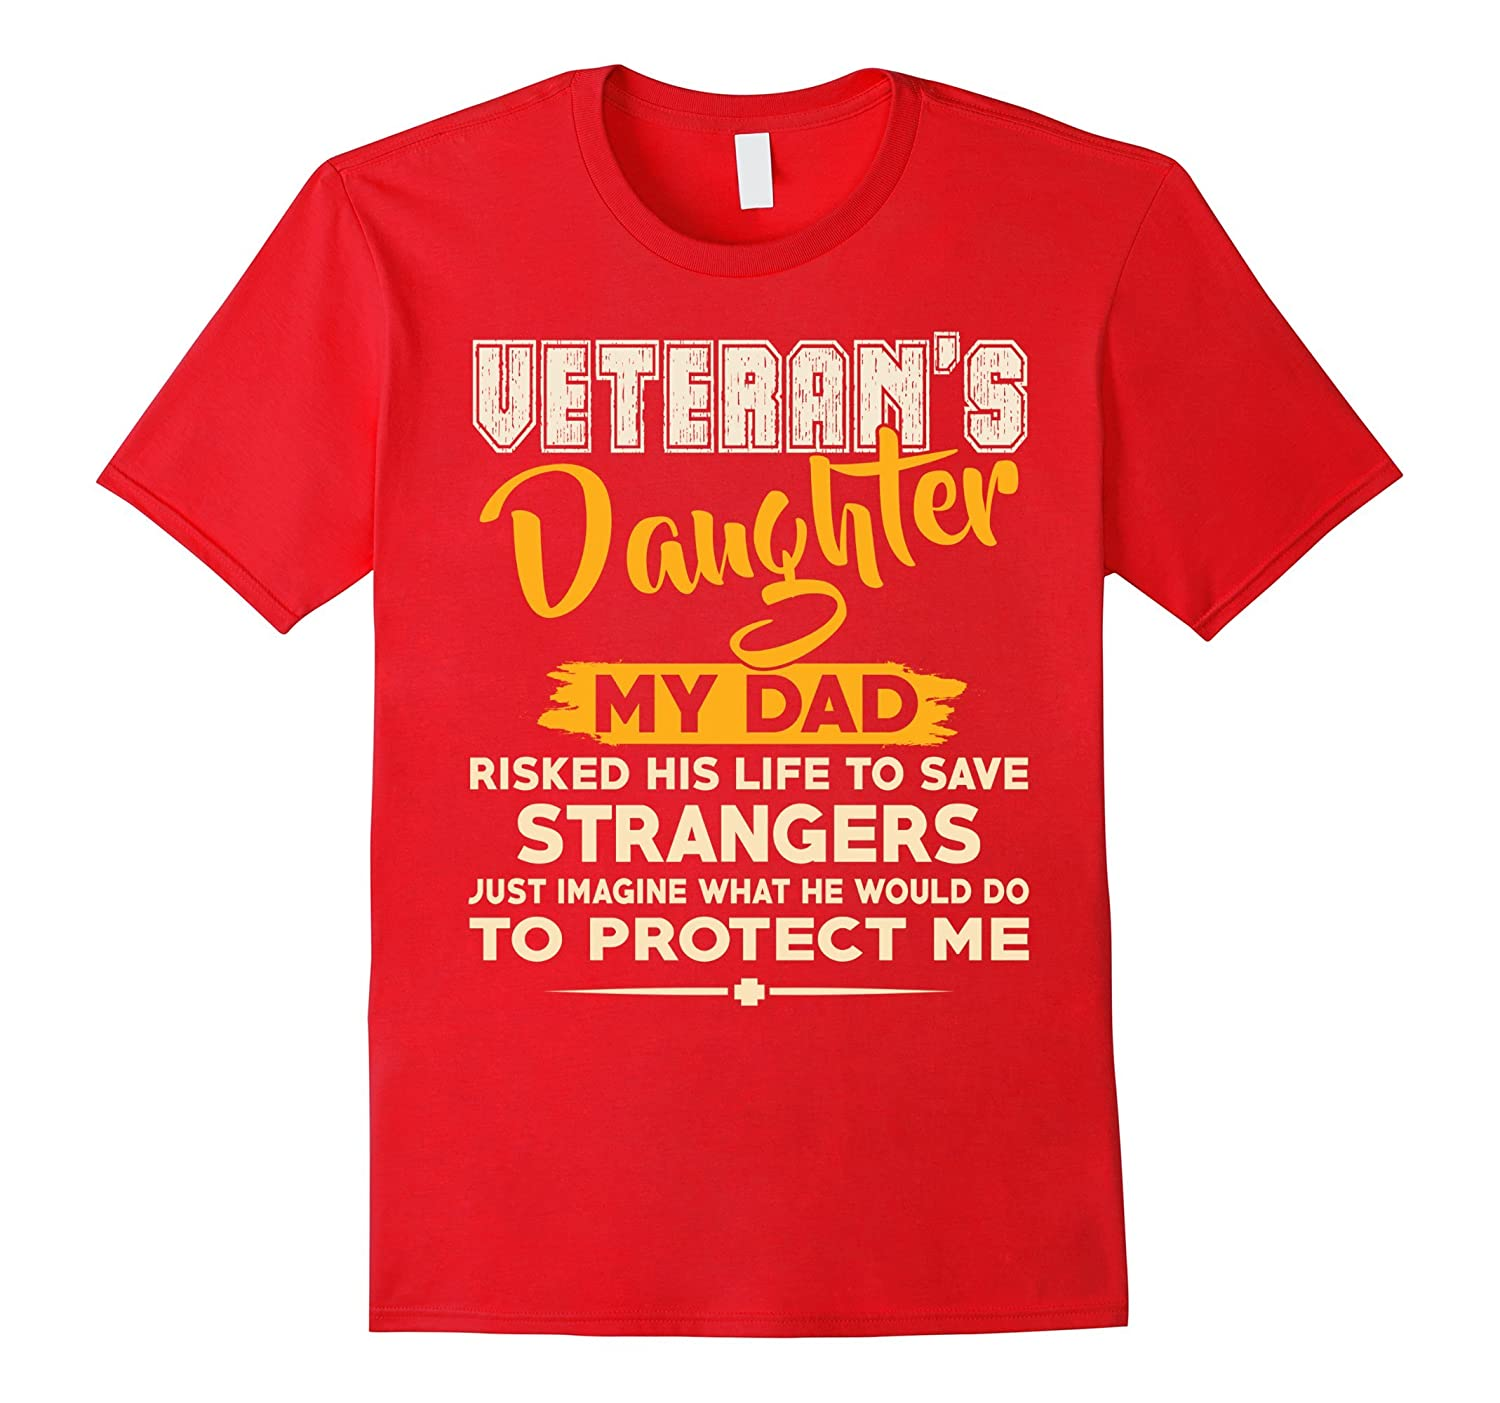 Veterans Daughter T-Shirt- My Dad Risked His Life To Save-RT